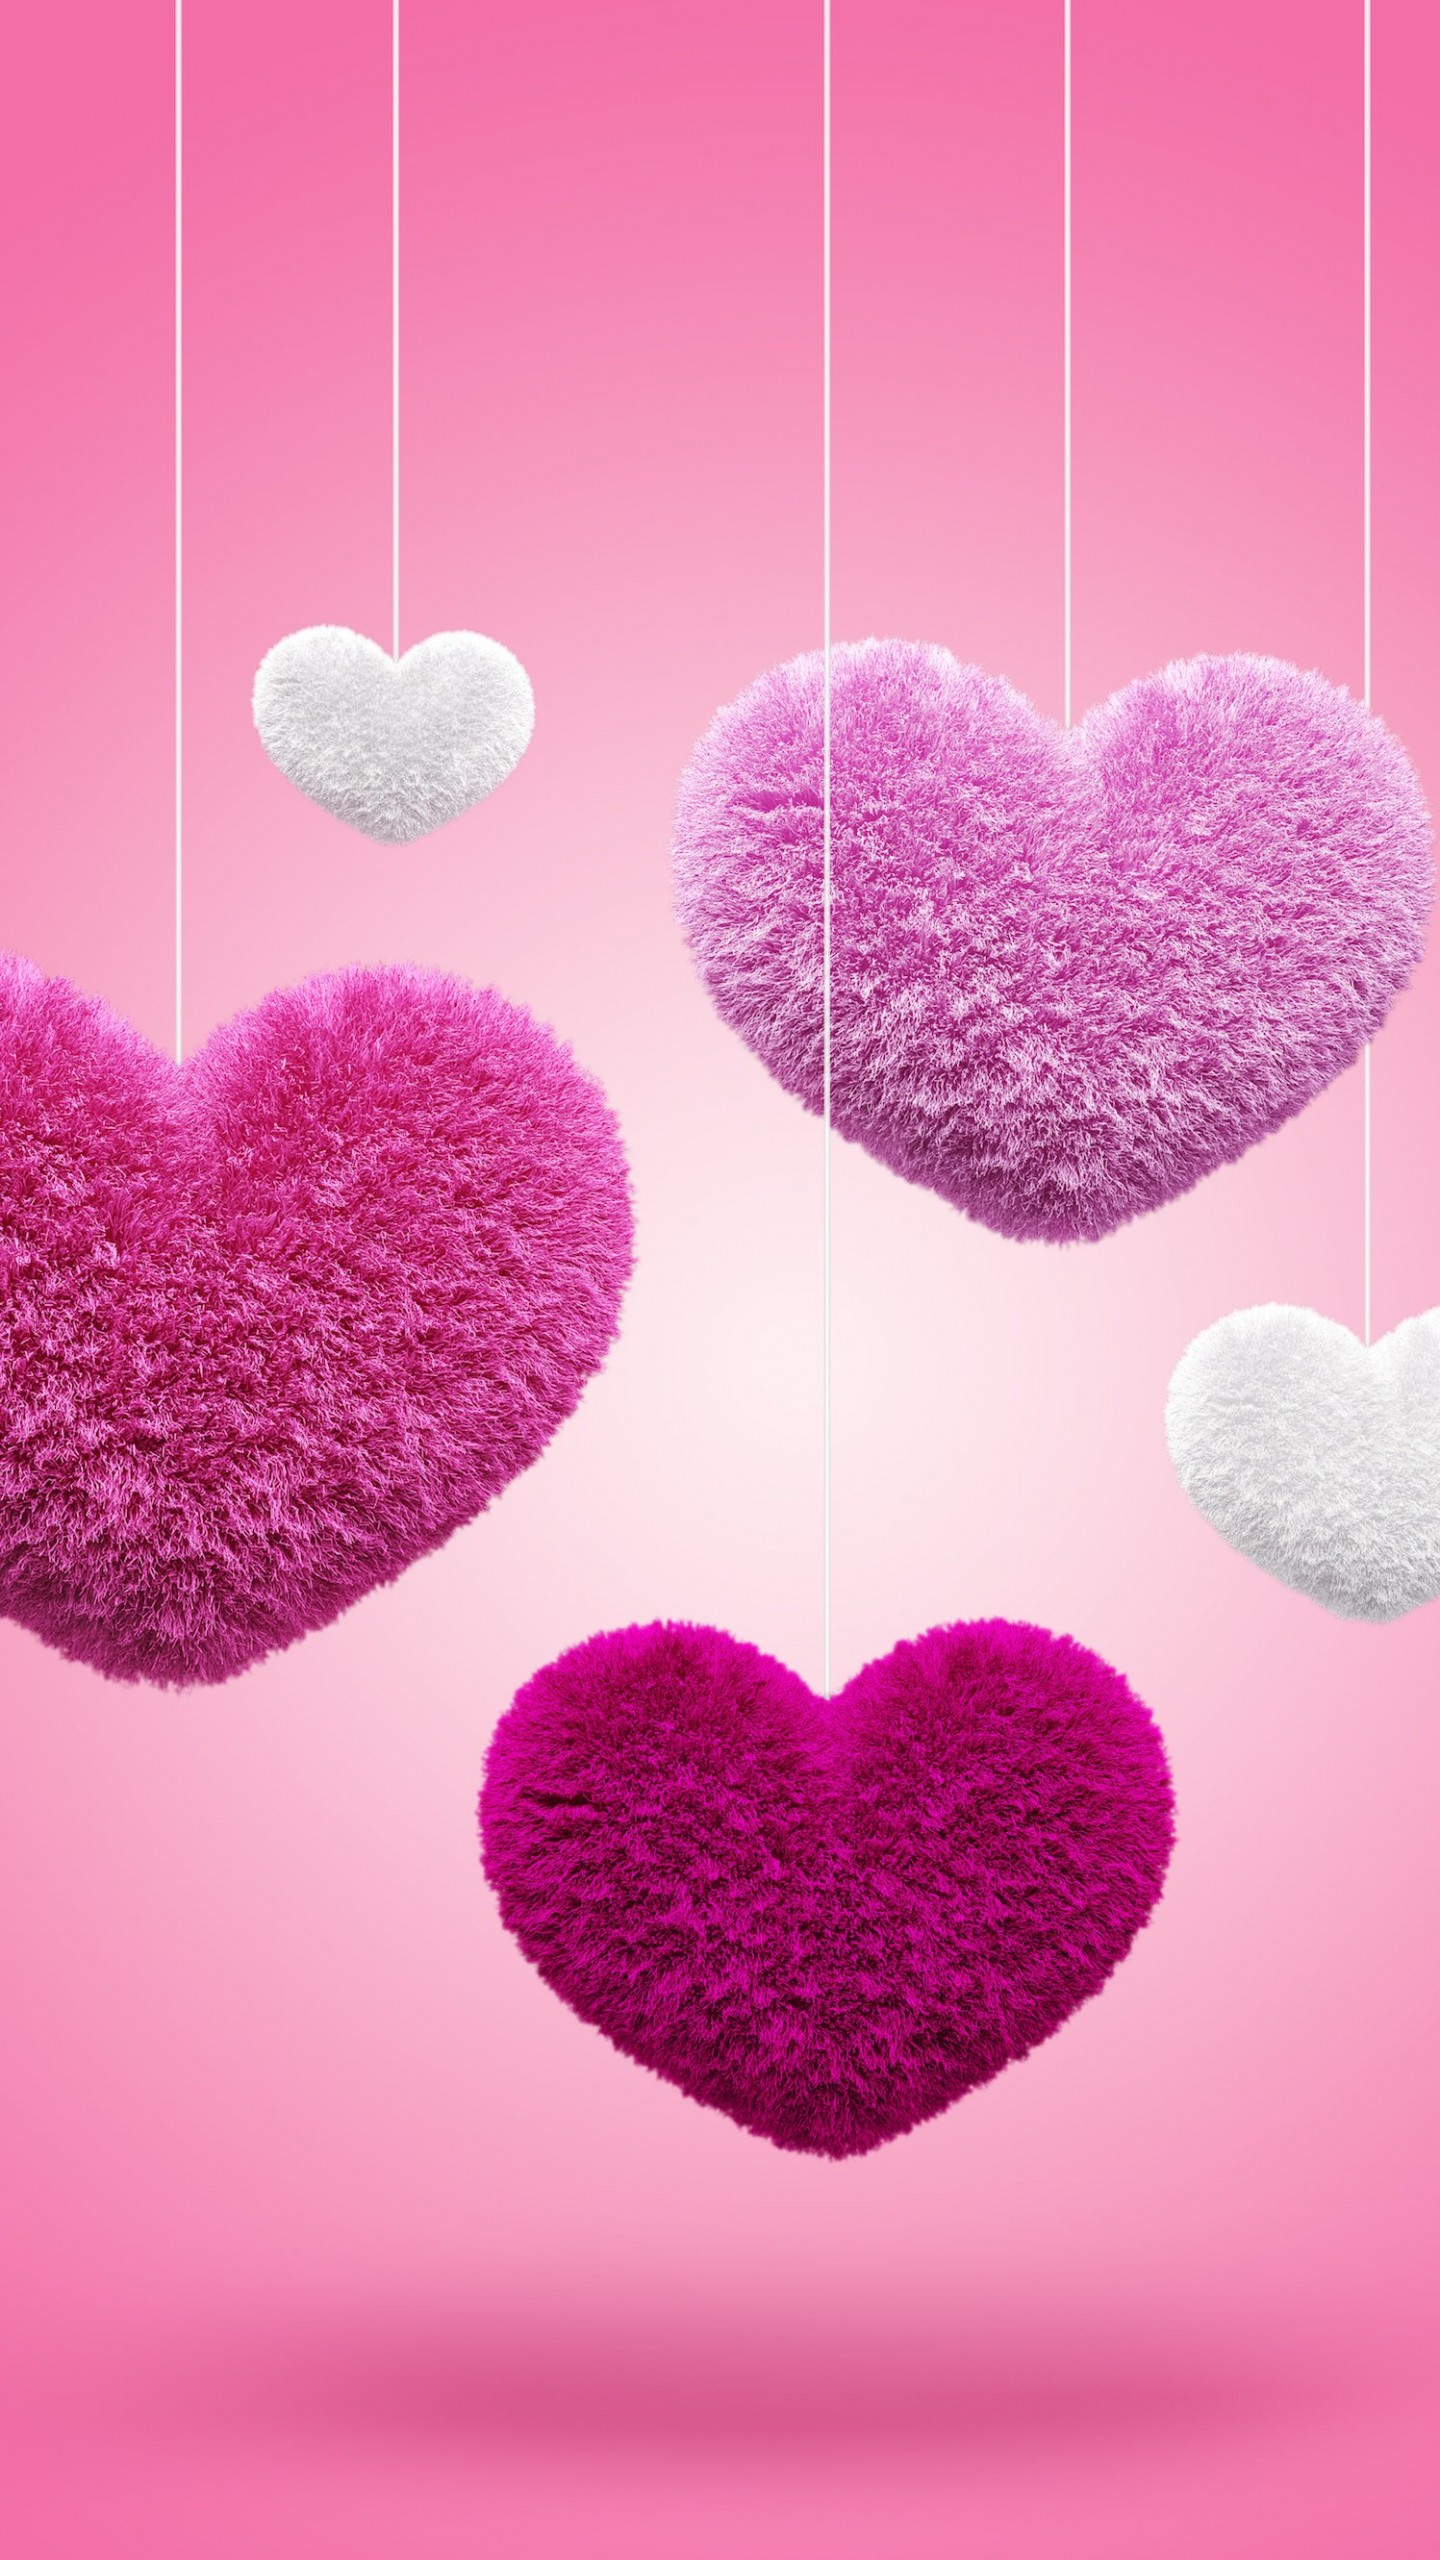 Fluffy Hearts Wallpaper for SAMSUNG Galaxy S6